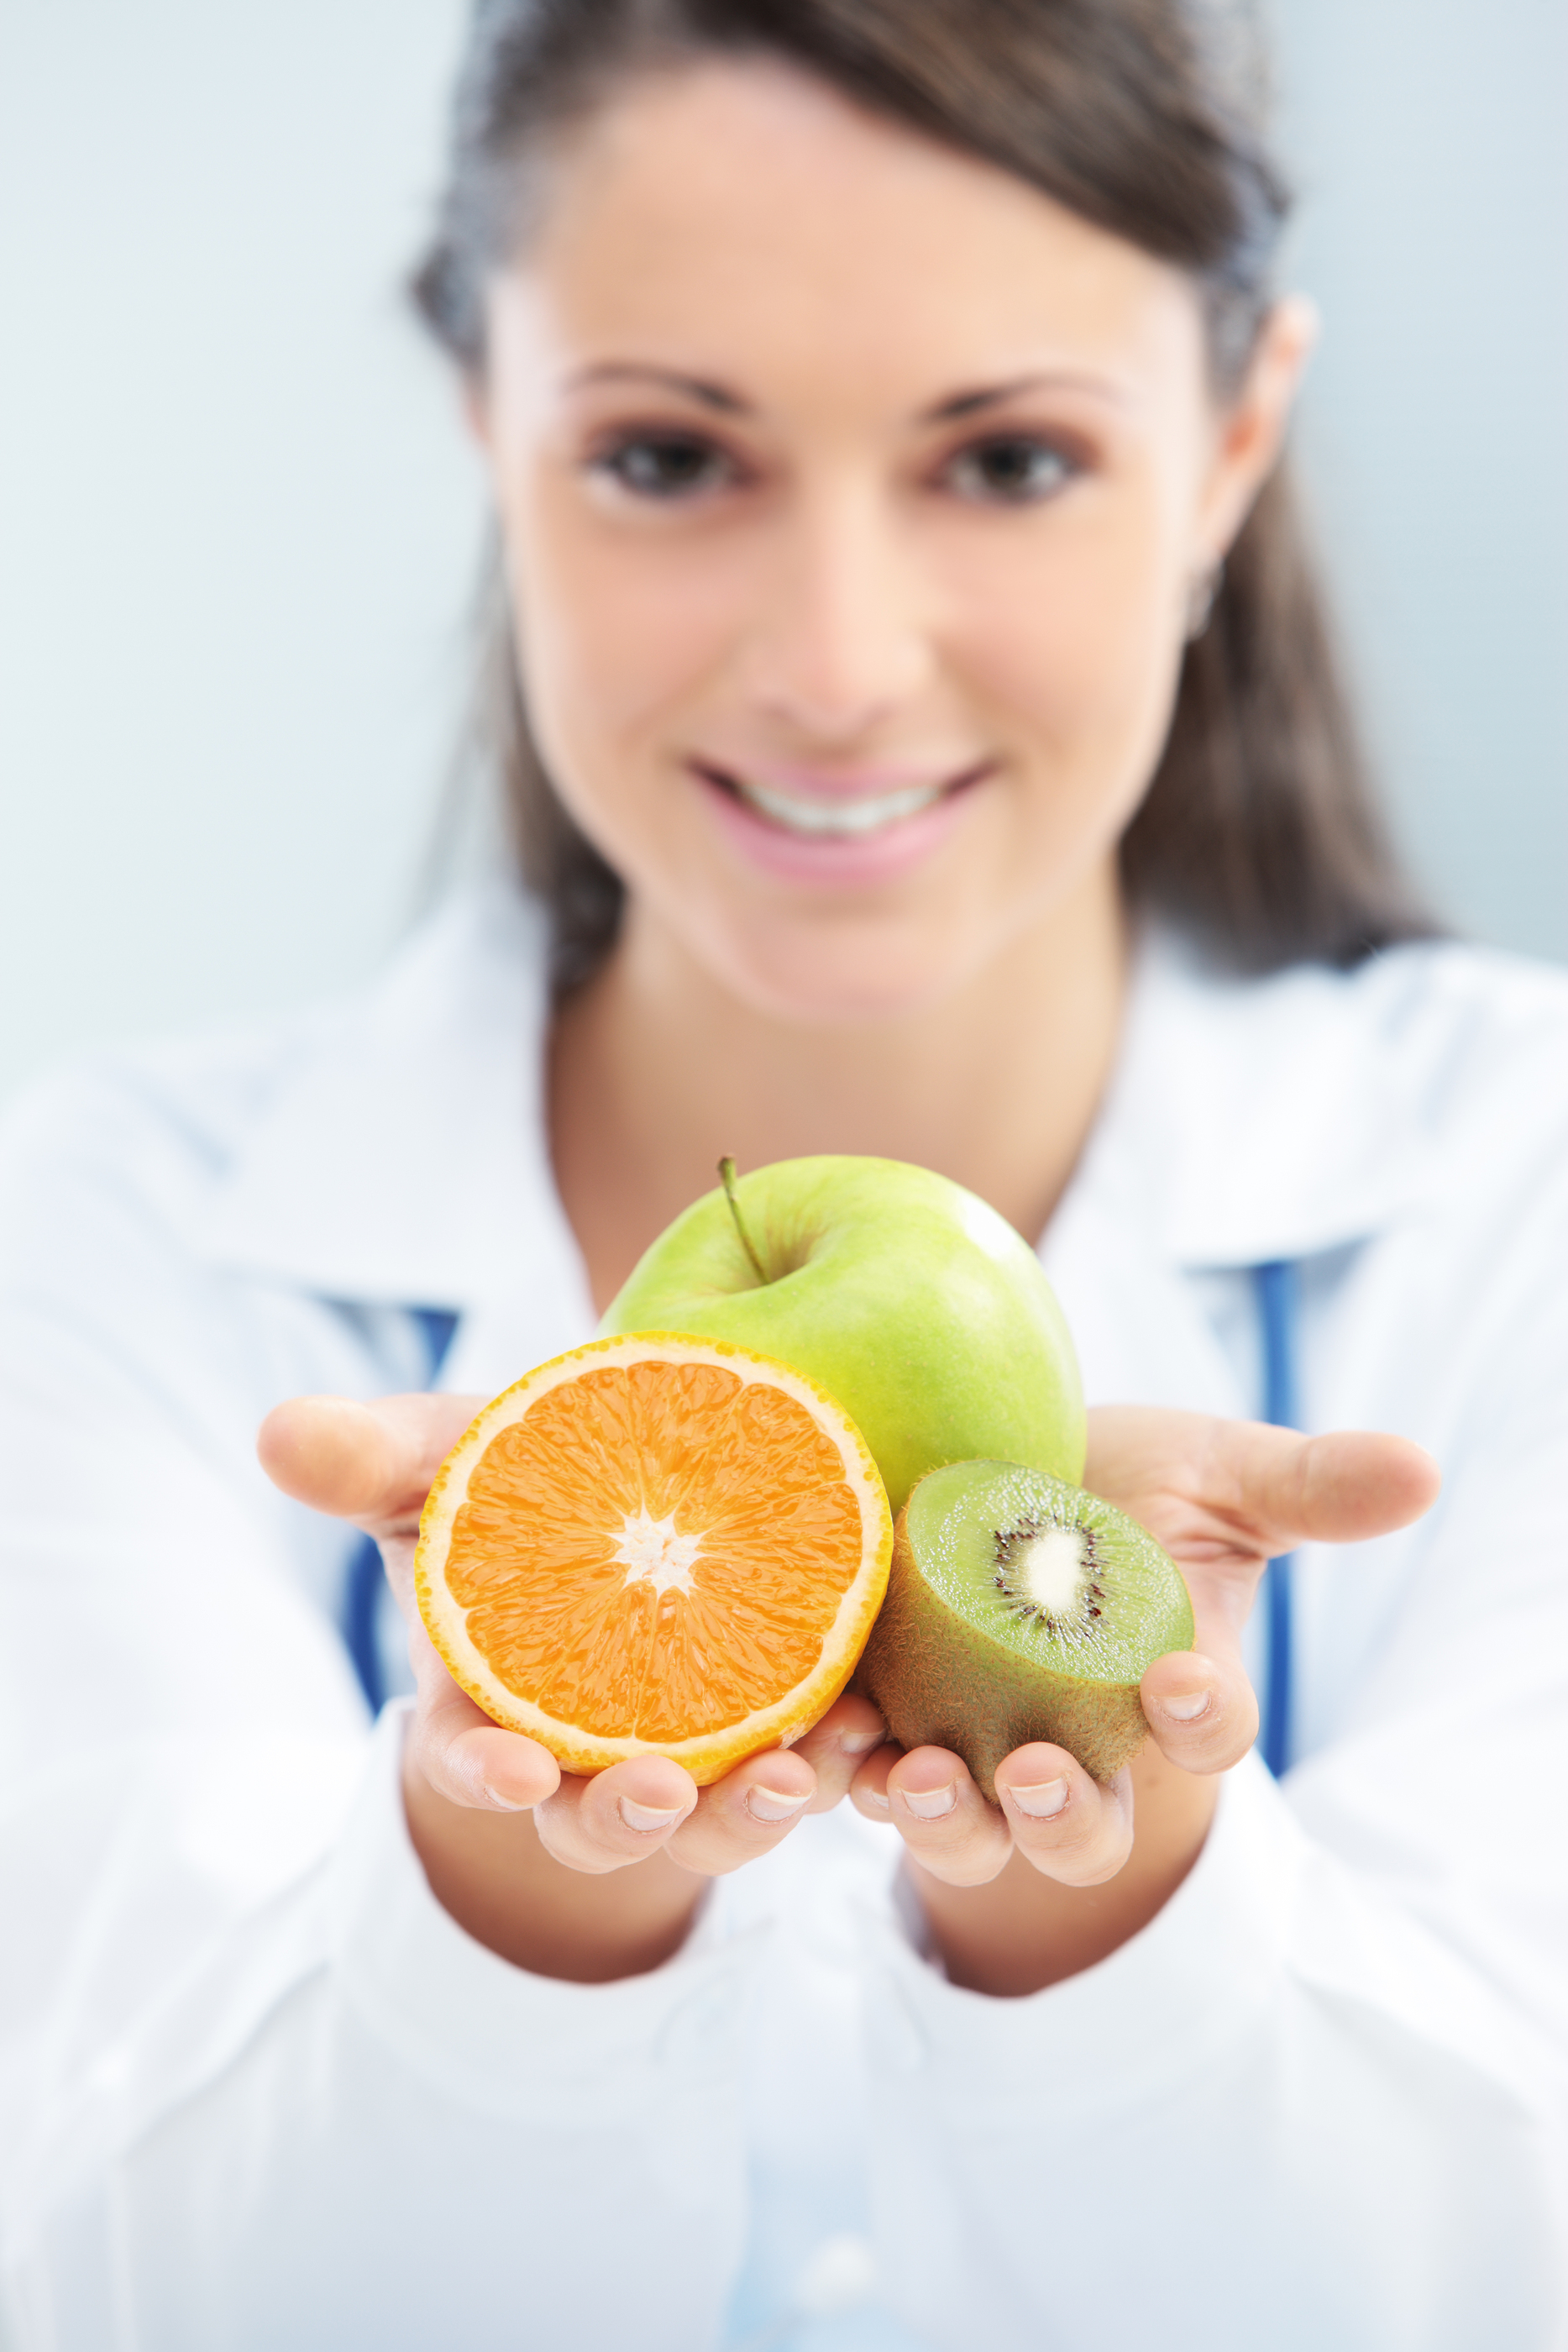 Nutritionist Doctor holding some fruits in her hand